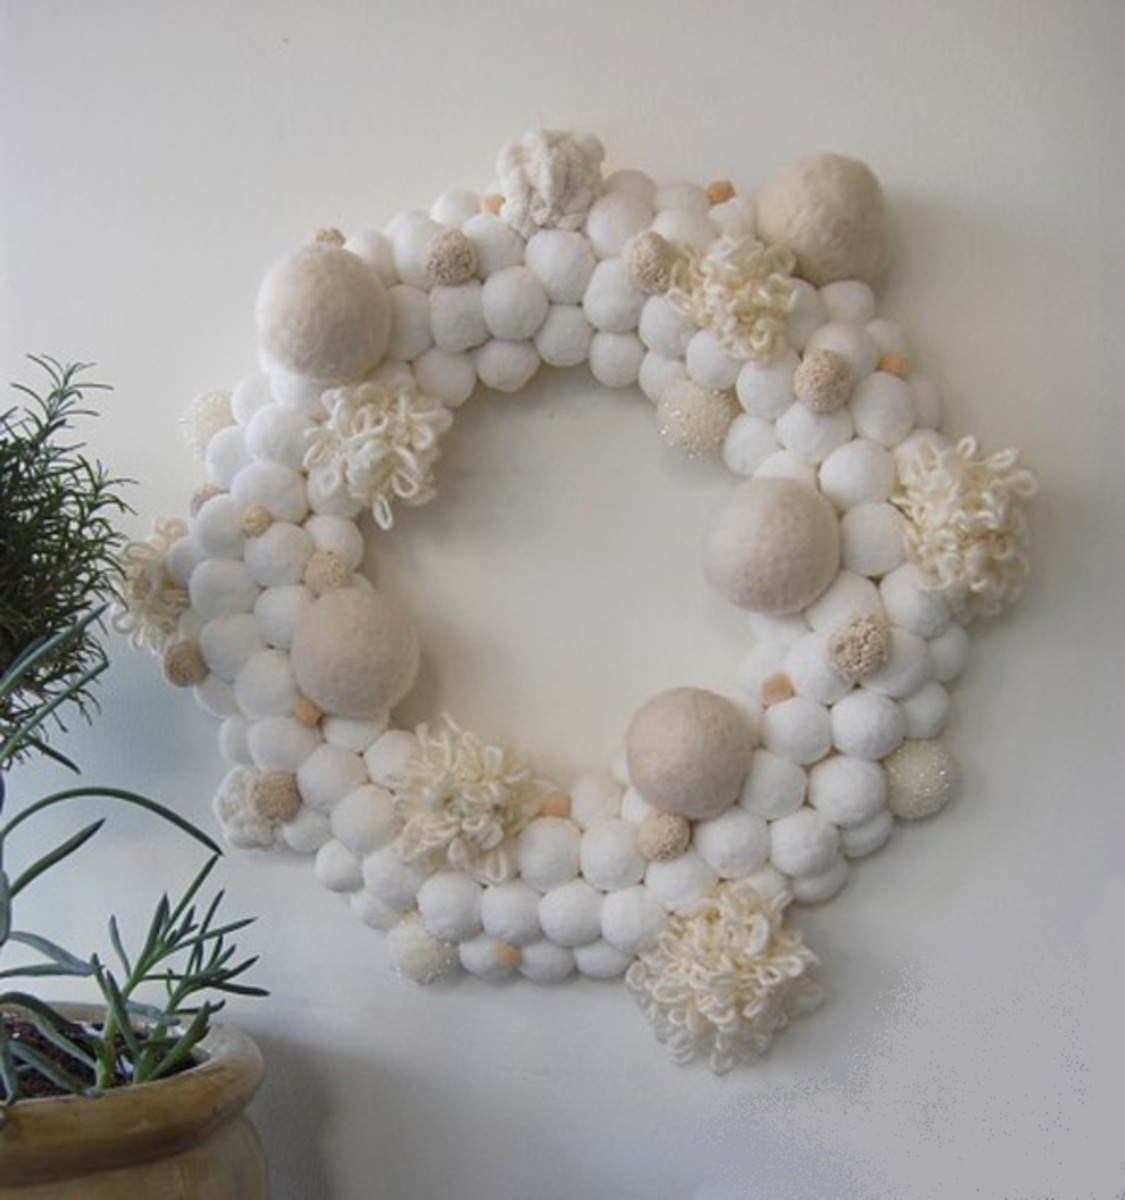 The very white and cream felted wool wreath.